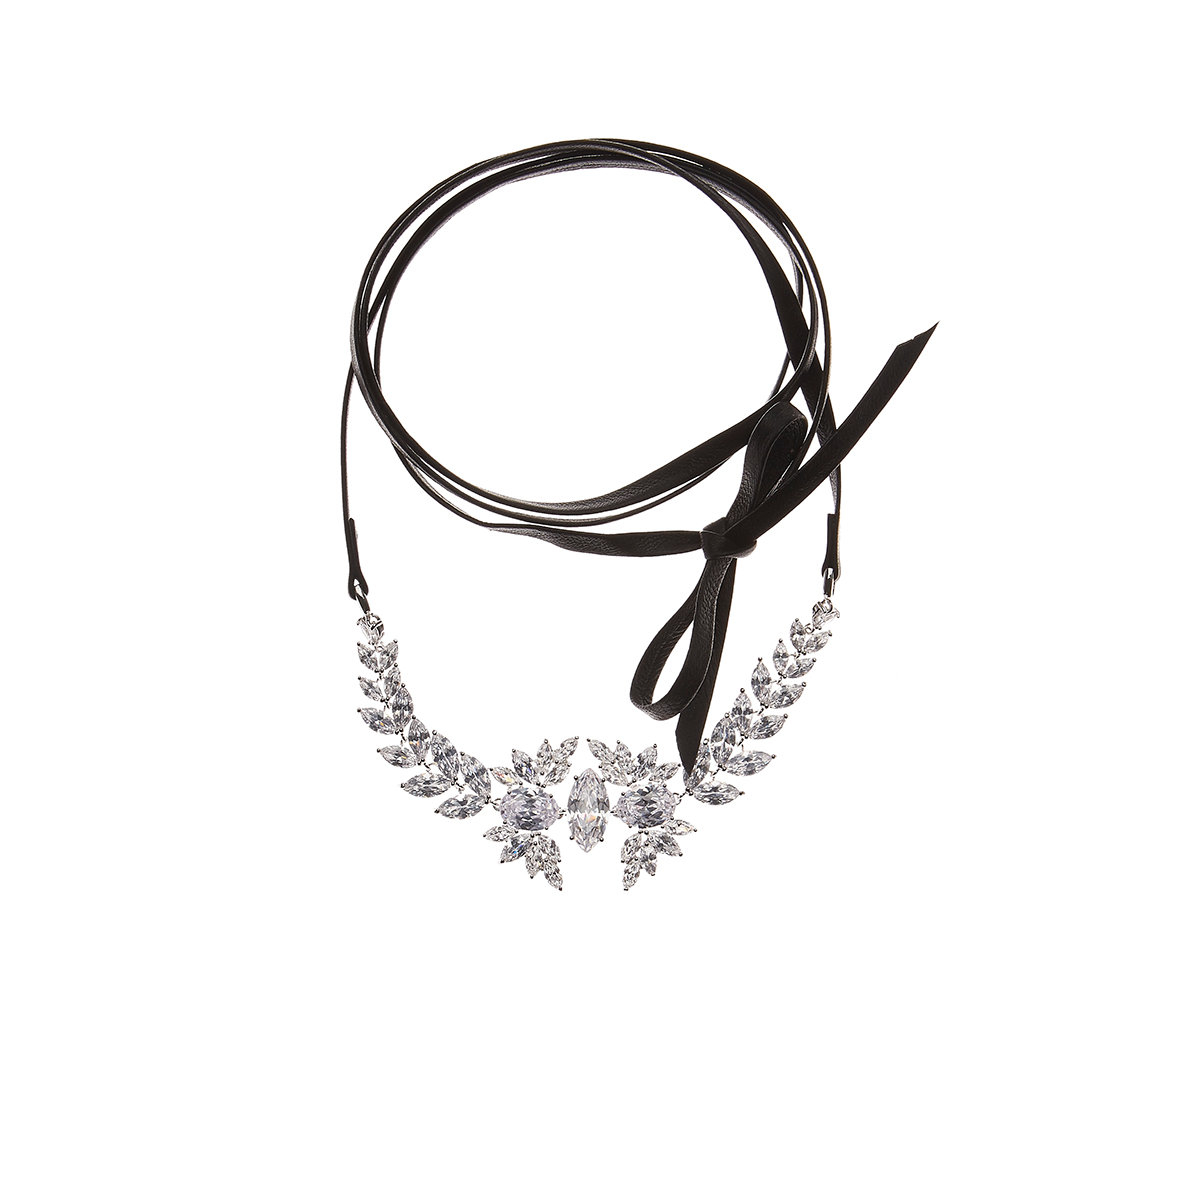 Fallon Monarch Leather & Crystal Choker Necklace KPNTgdENDW